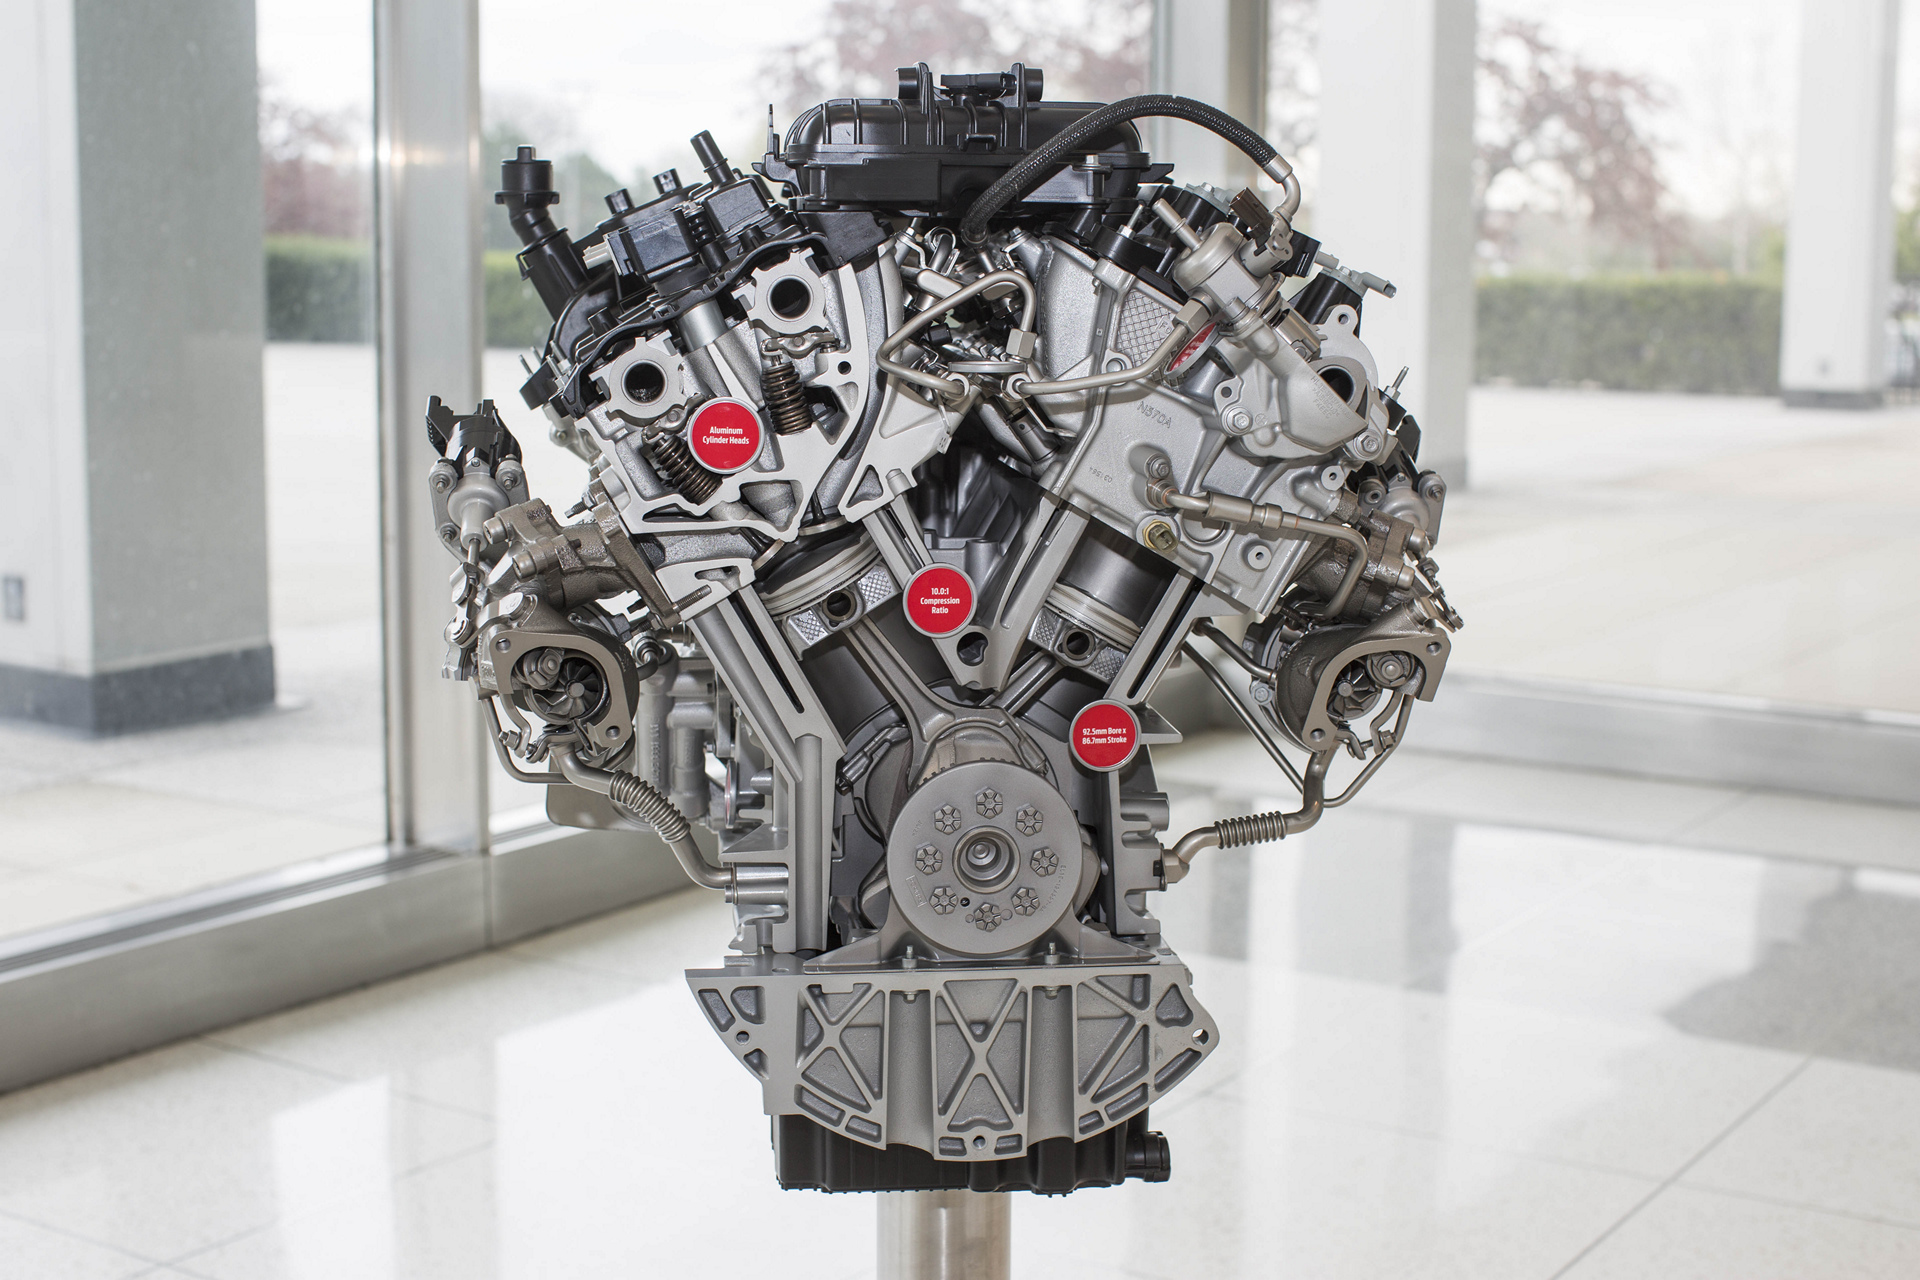 3.5 liter EcoBoost engine close up © Ford Motor Company